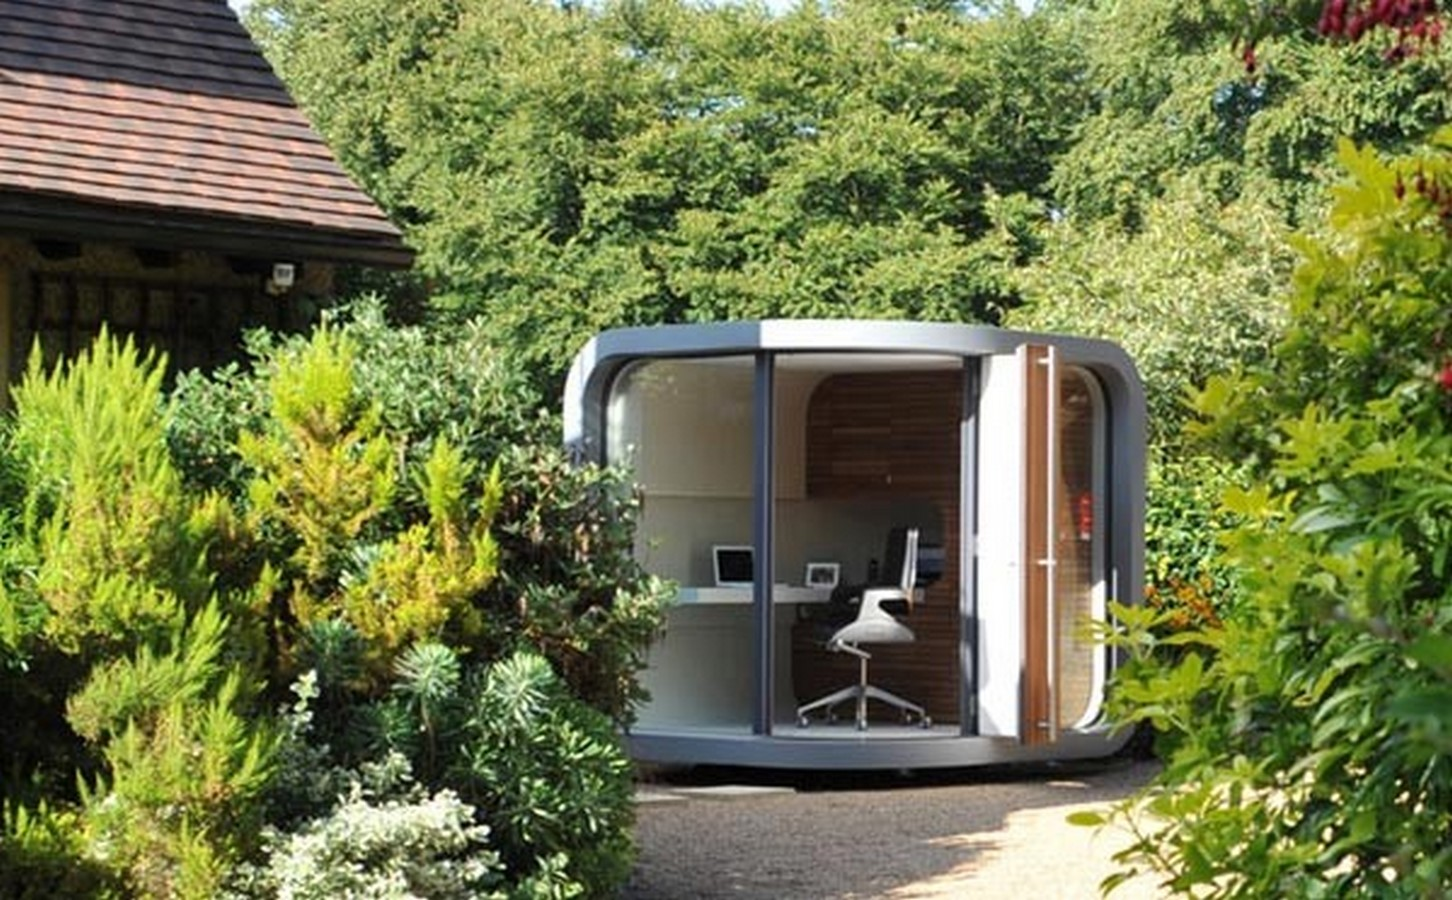 20 Futuristic homes ideas to invest in - Sheet2